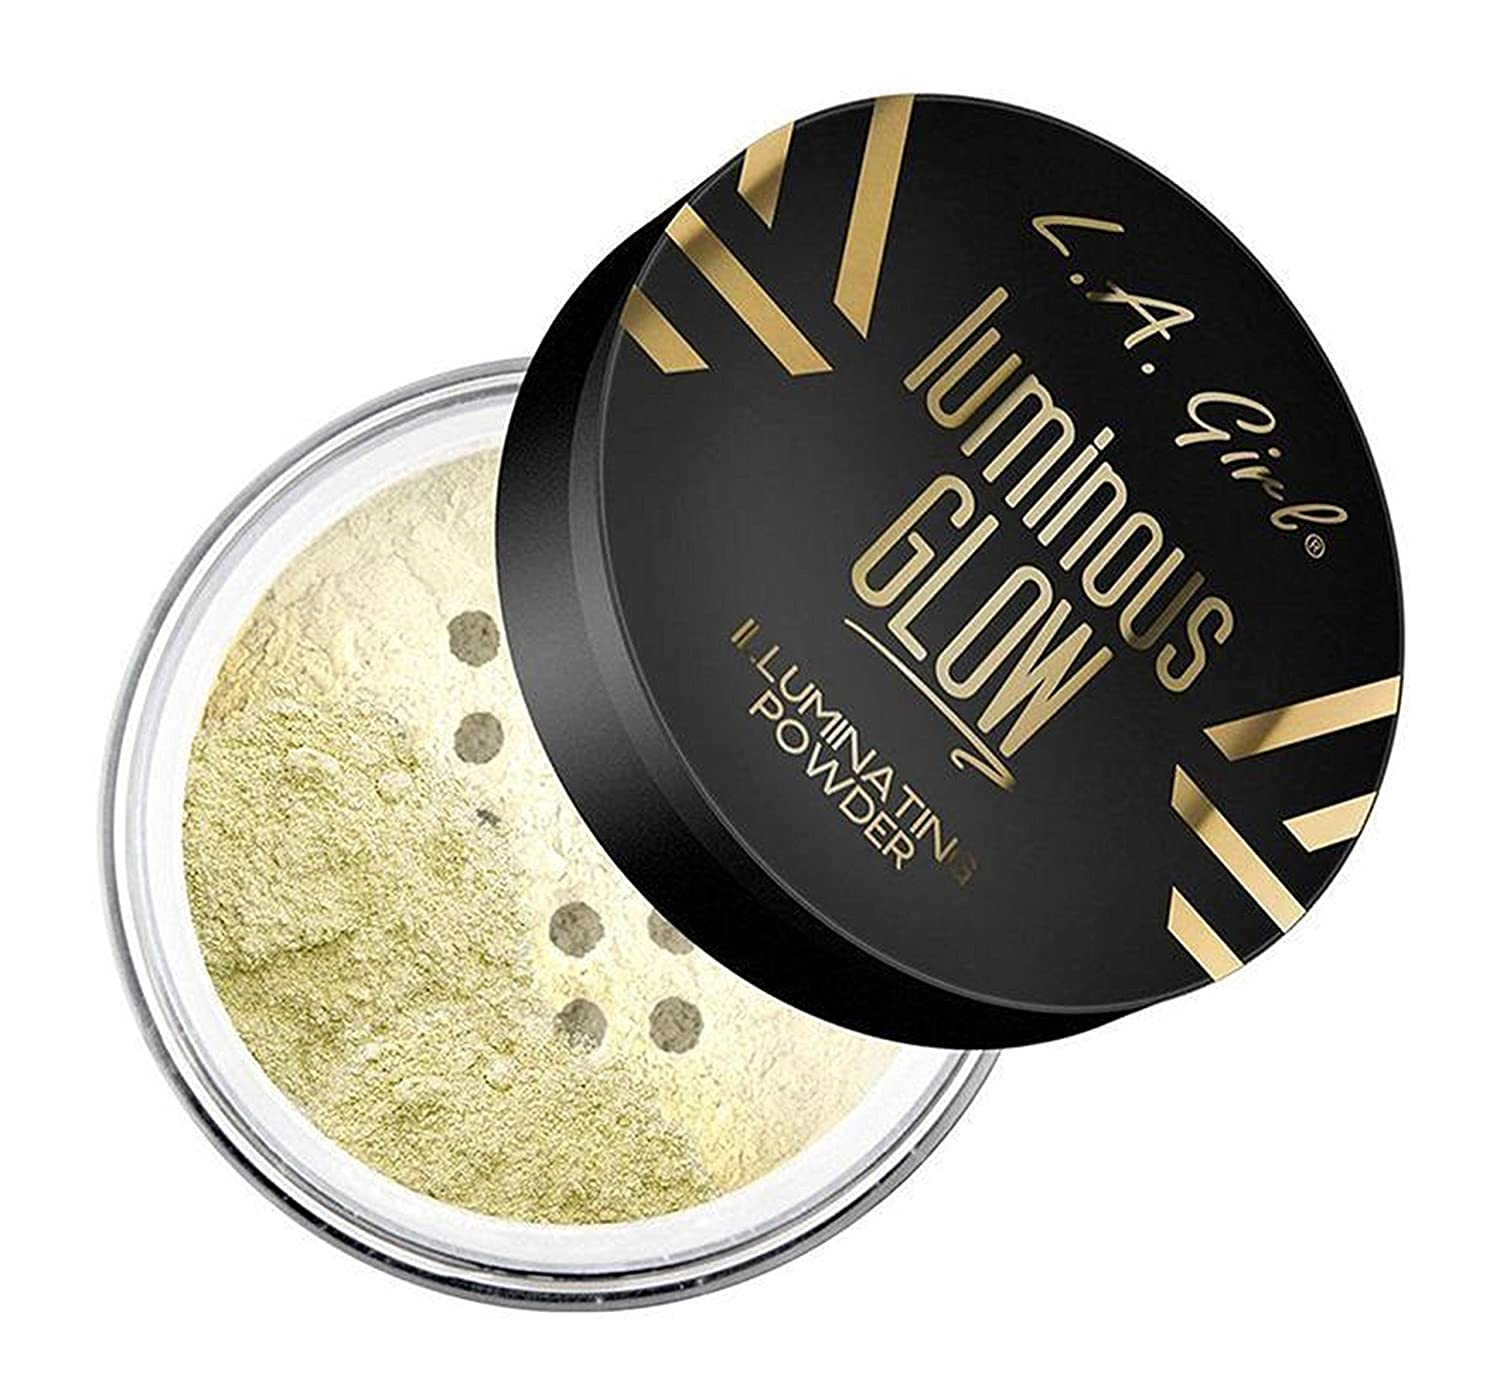 L.A. GIRL Luminous Glow Illuminating Powder - 24k Beauty 21 Cosmetics Inc